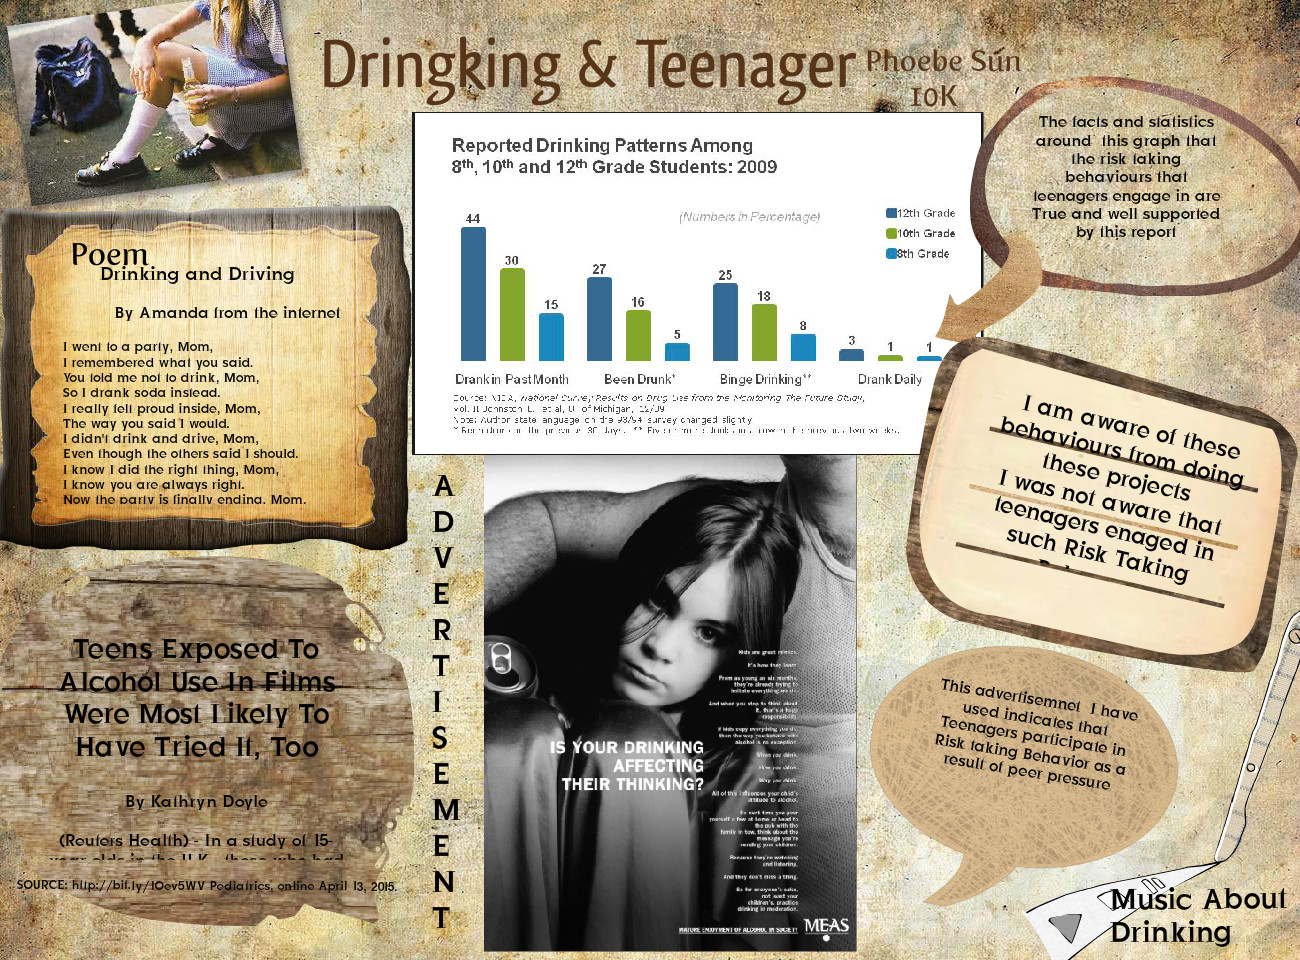 Drinking & Teenager